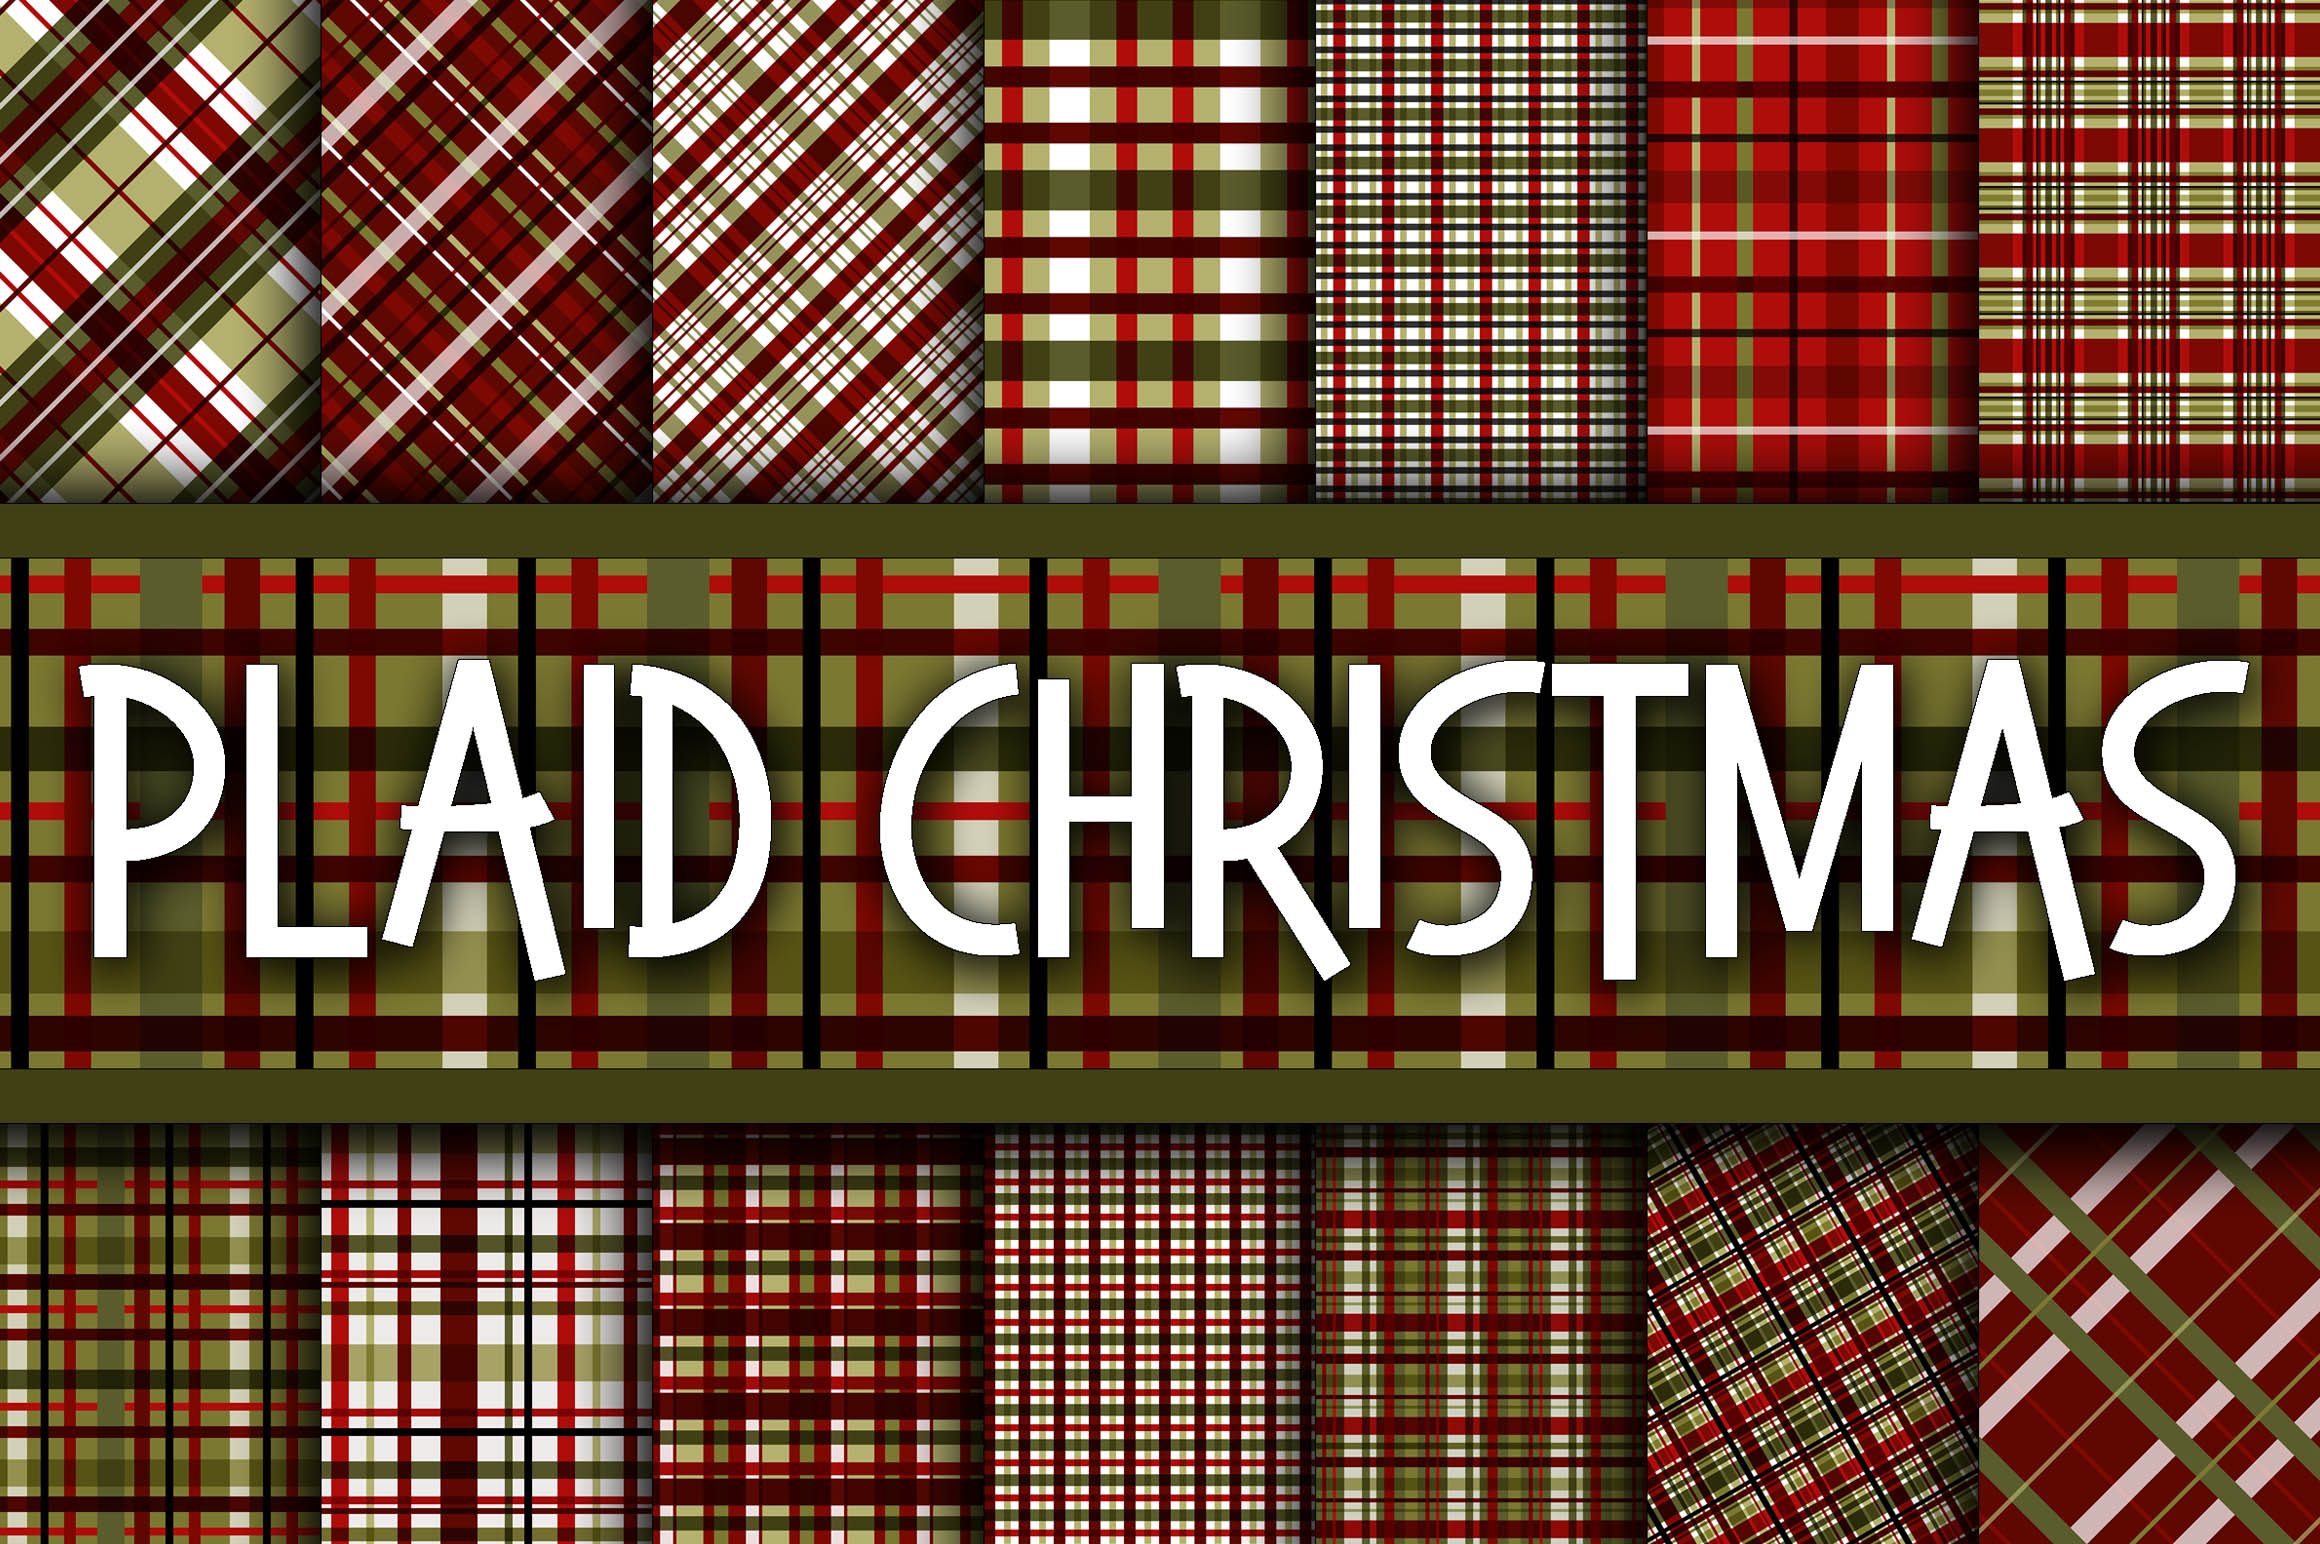 Download Free Plaid Christmas Digital Paper Graphic By Oldmarketdesigns for Cricut Explore, Silhouette and other cutting machines.